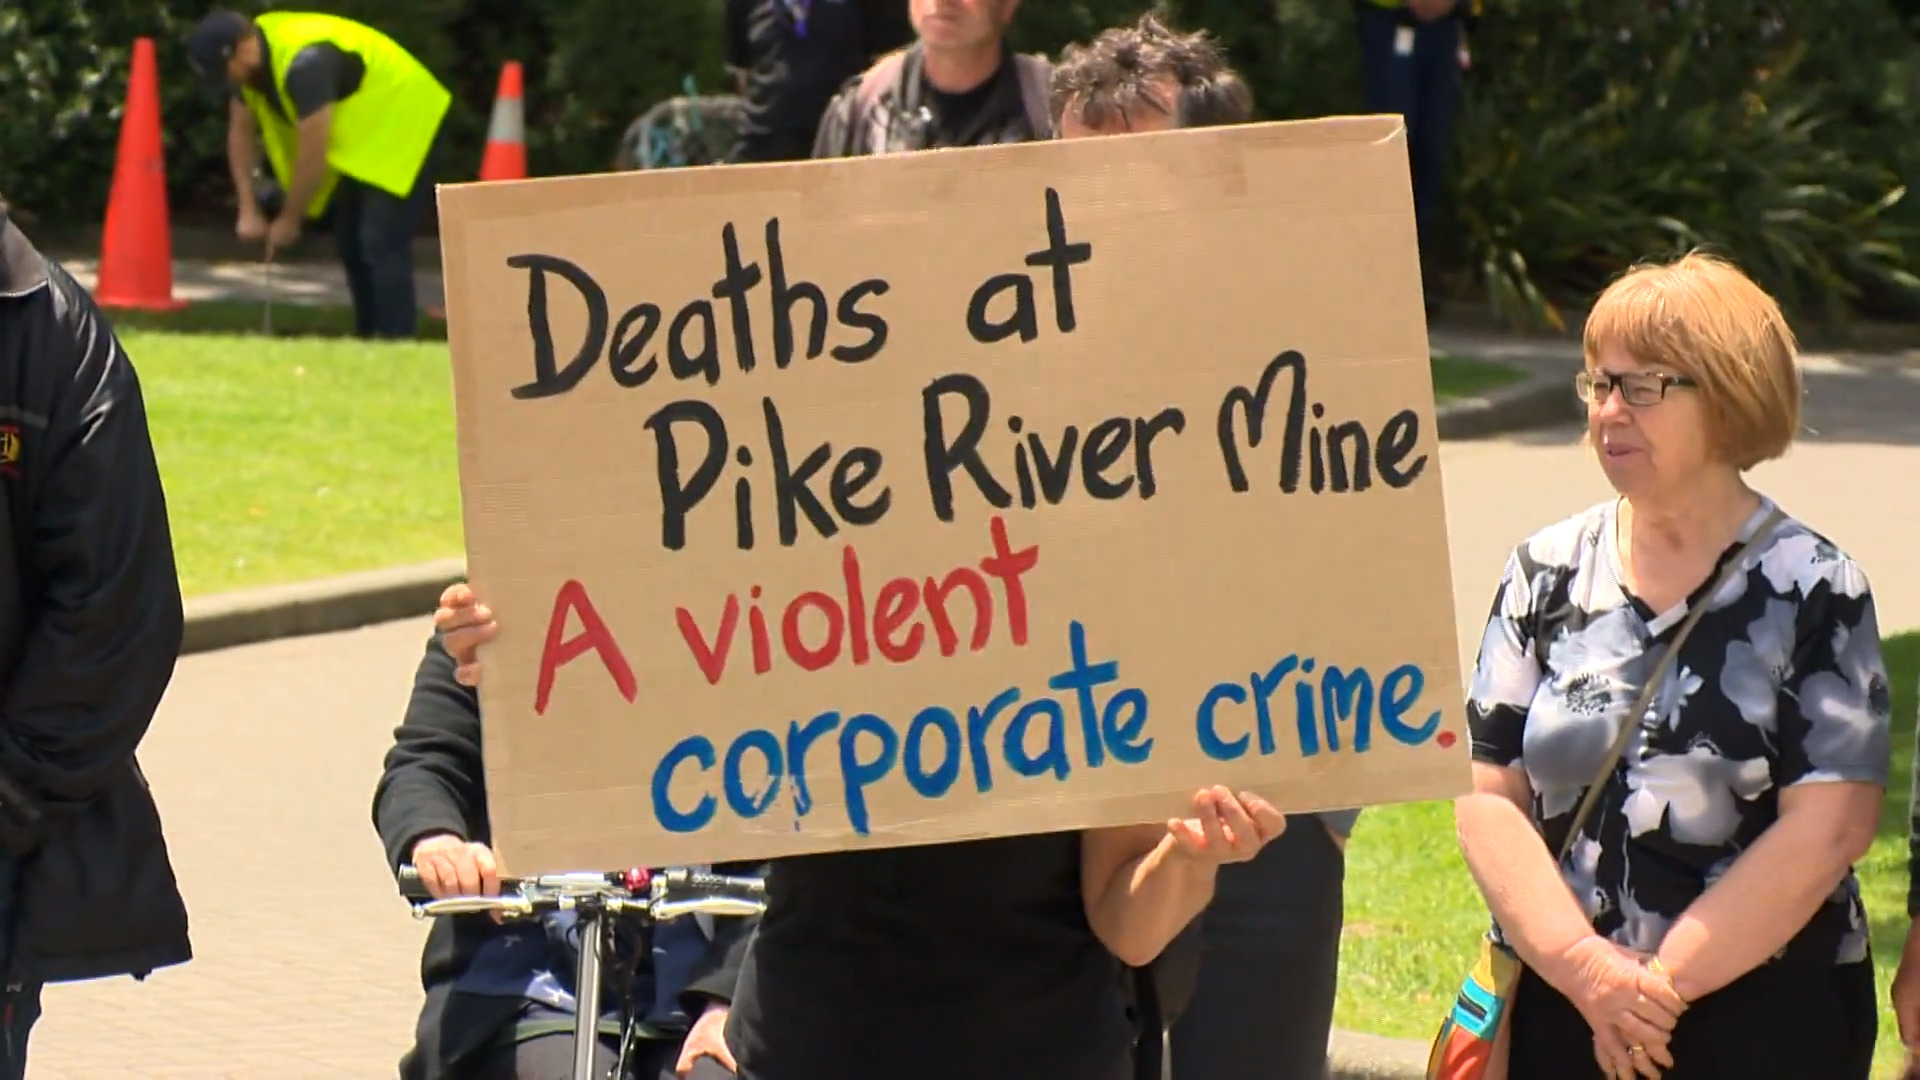 Video for Pike River Mine investigation reopens